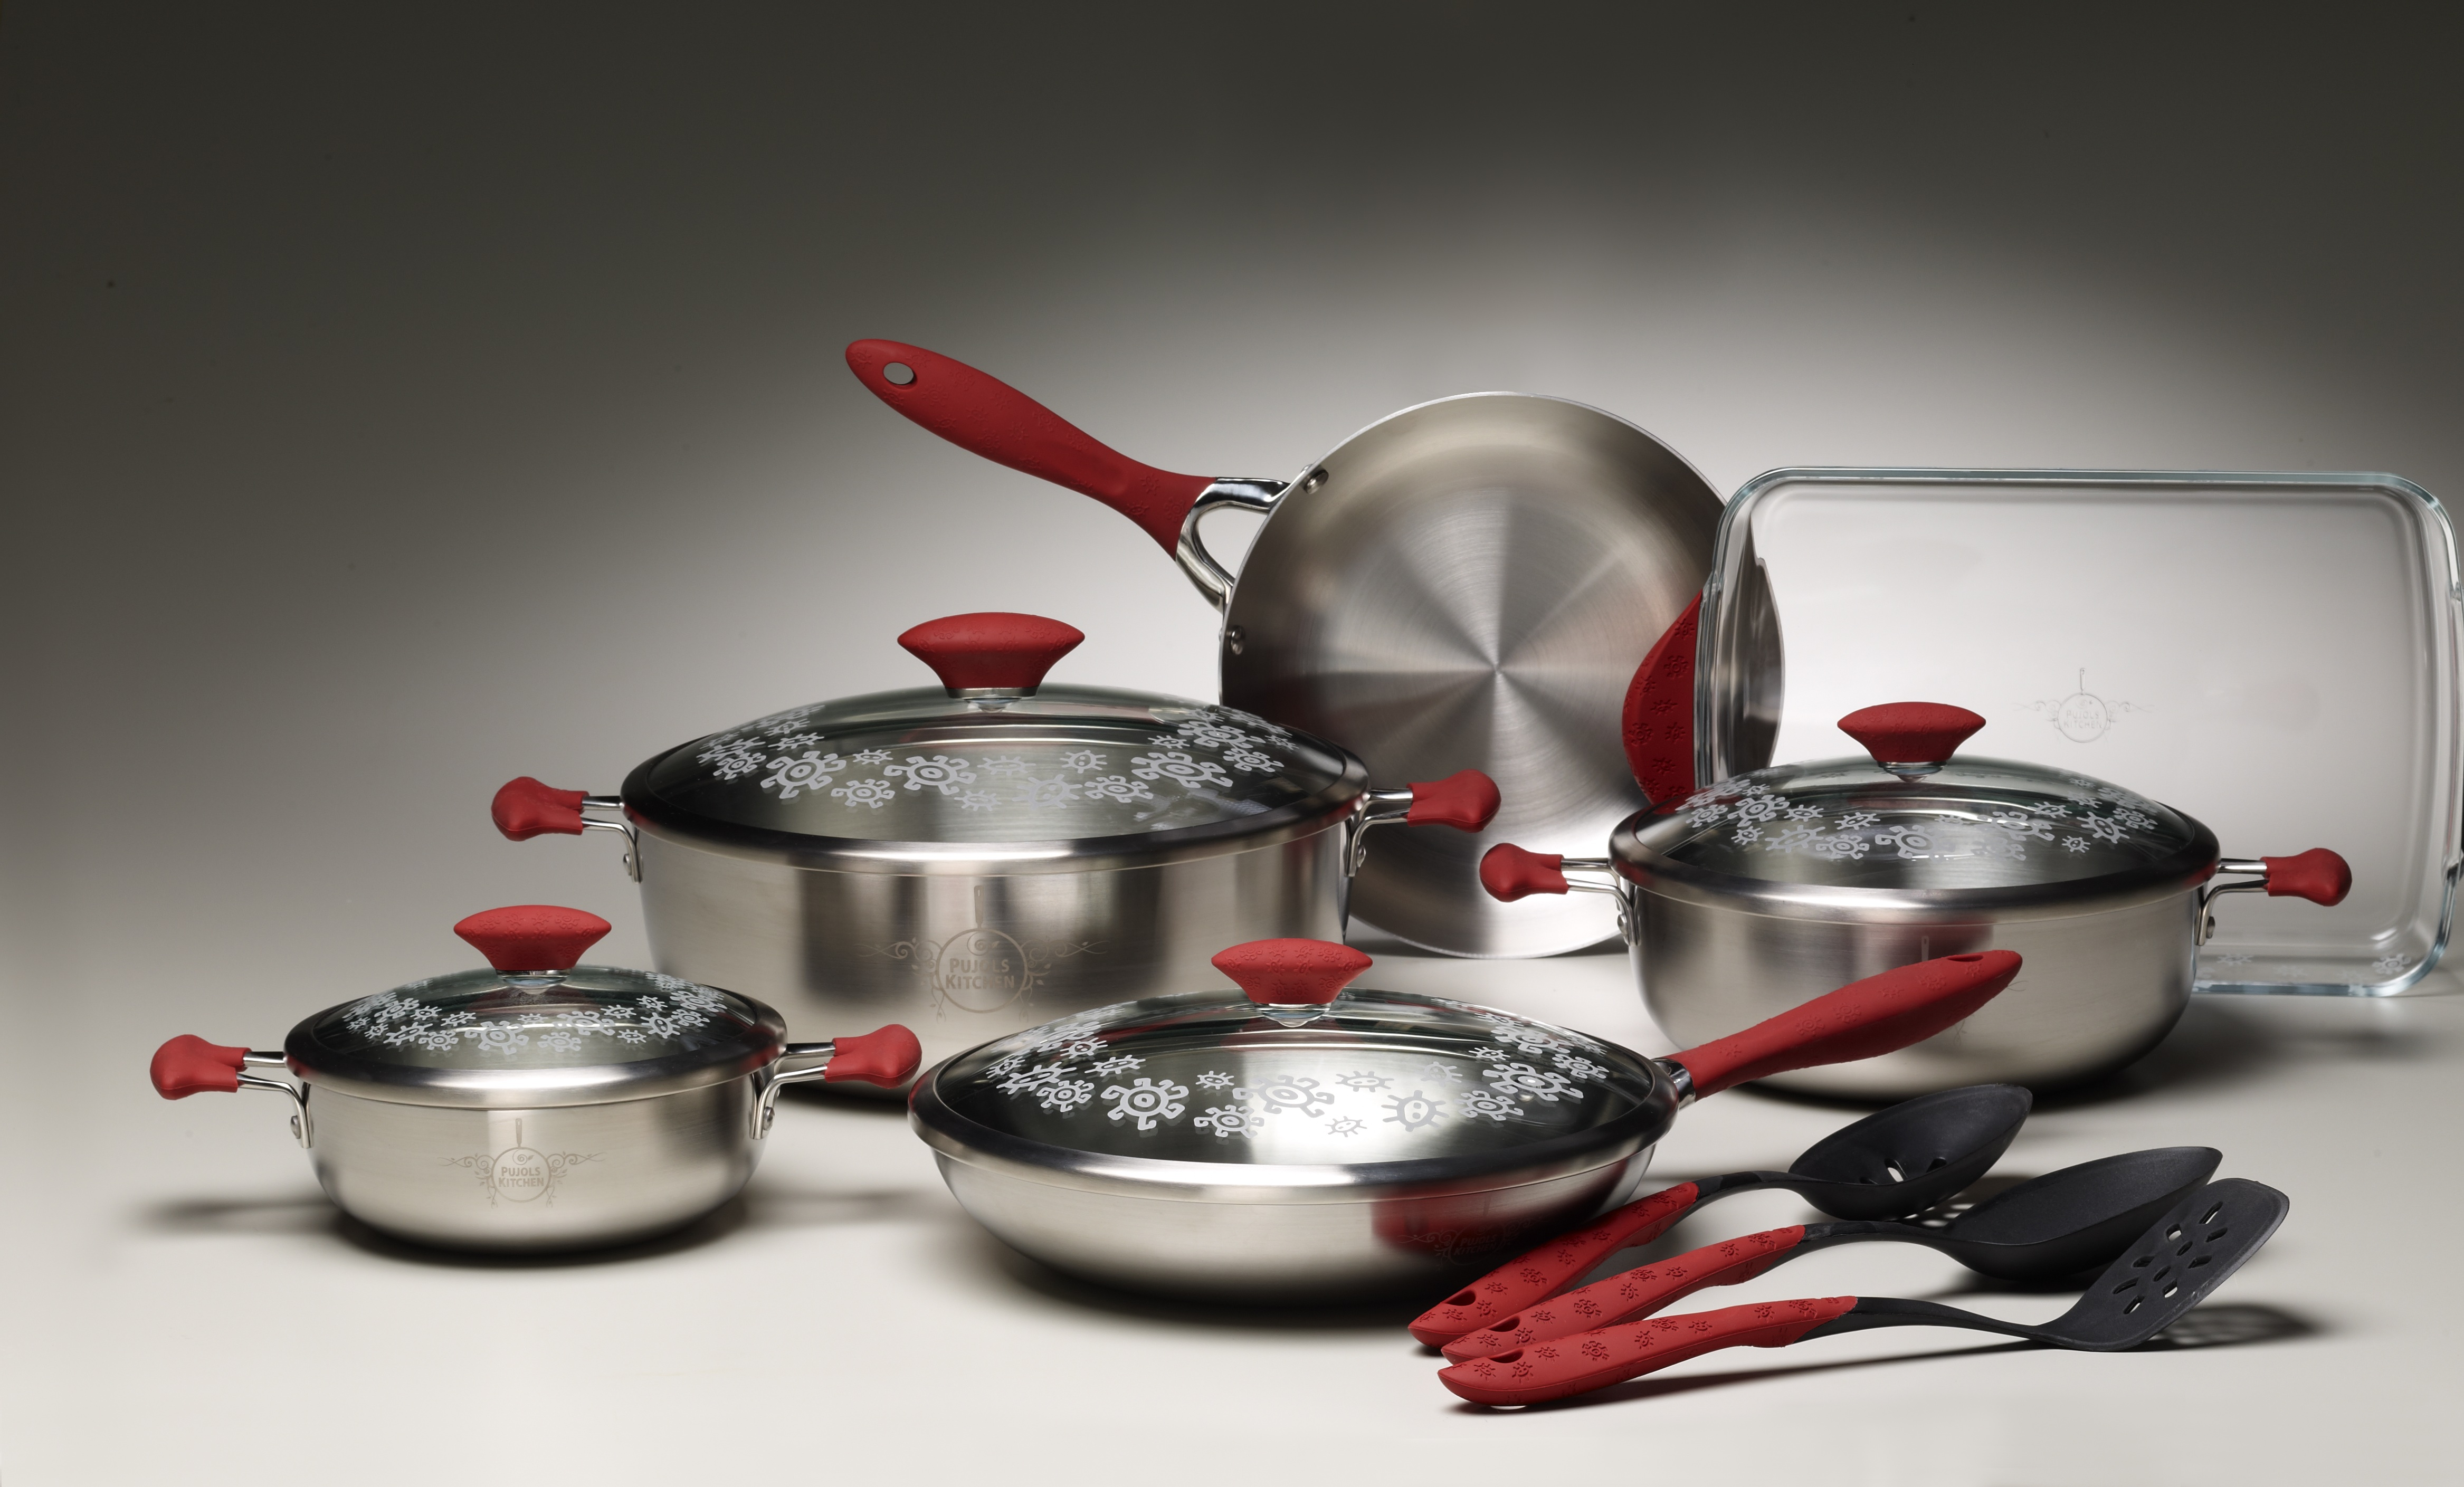 Introducing Pujols Kitchen Cookware An innovative line of